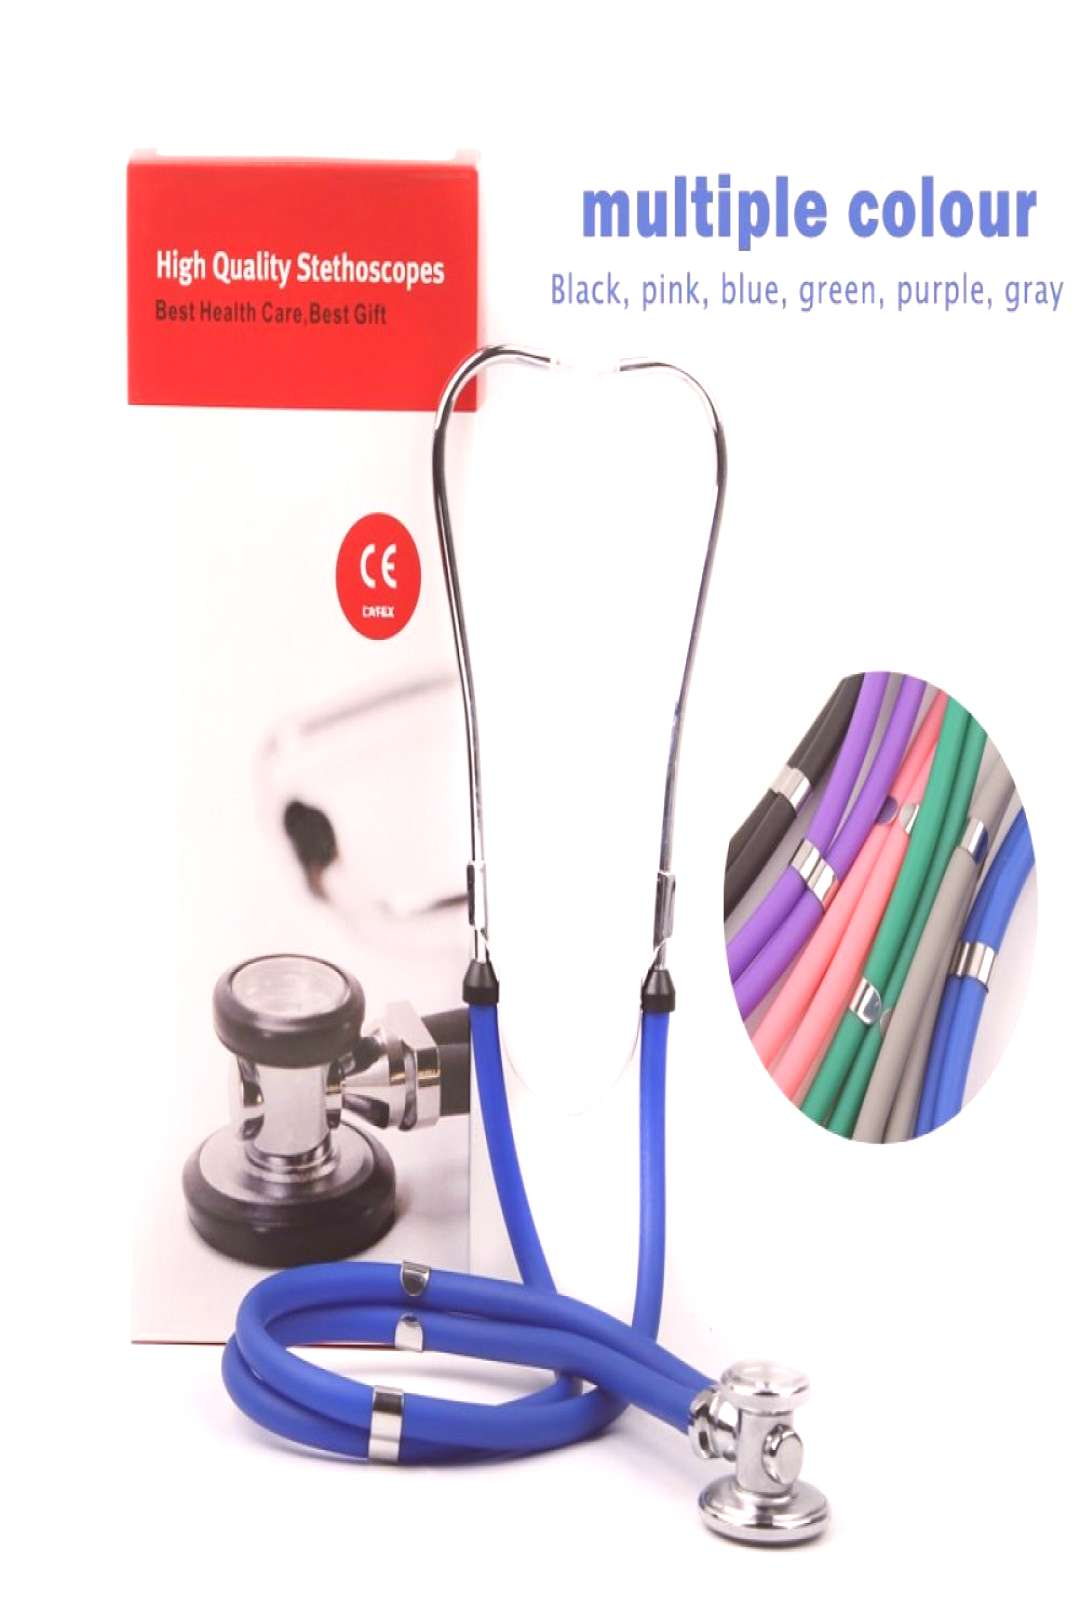 Multifunctional Double Tube Double Head Stethoscope Medical Estetoscopio Professional Heart Beat Fe